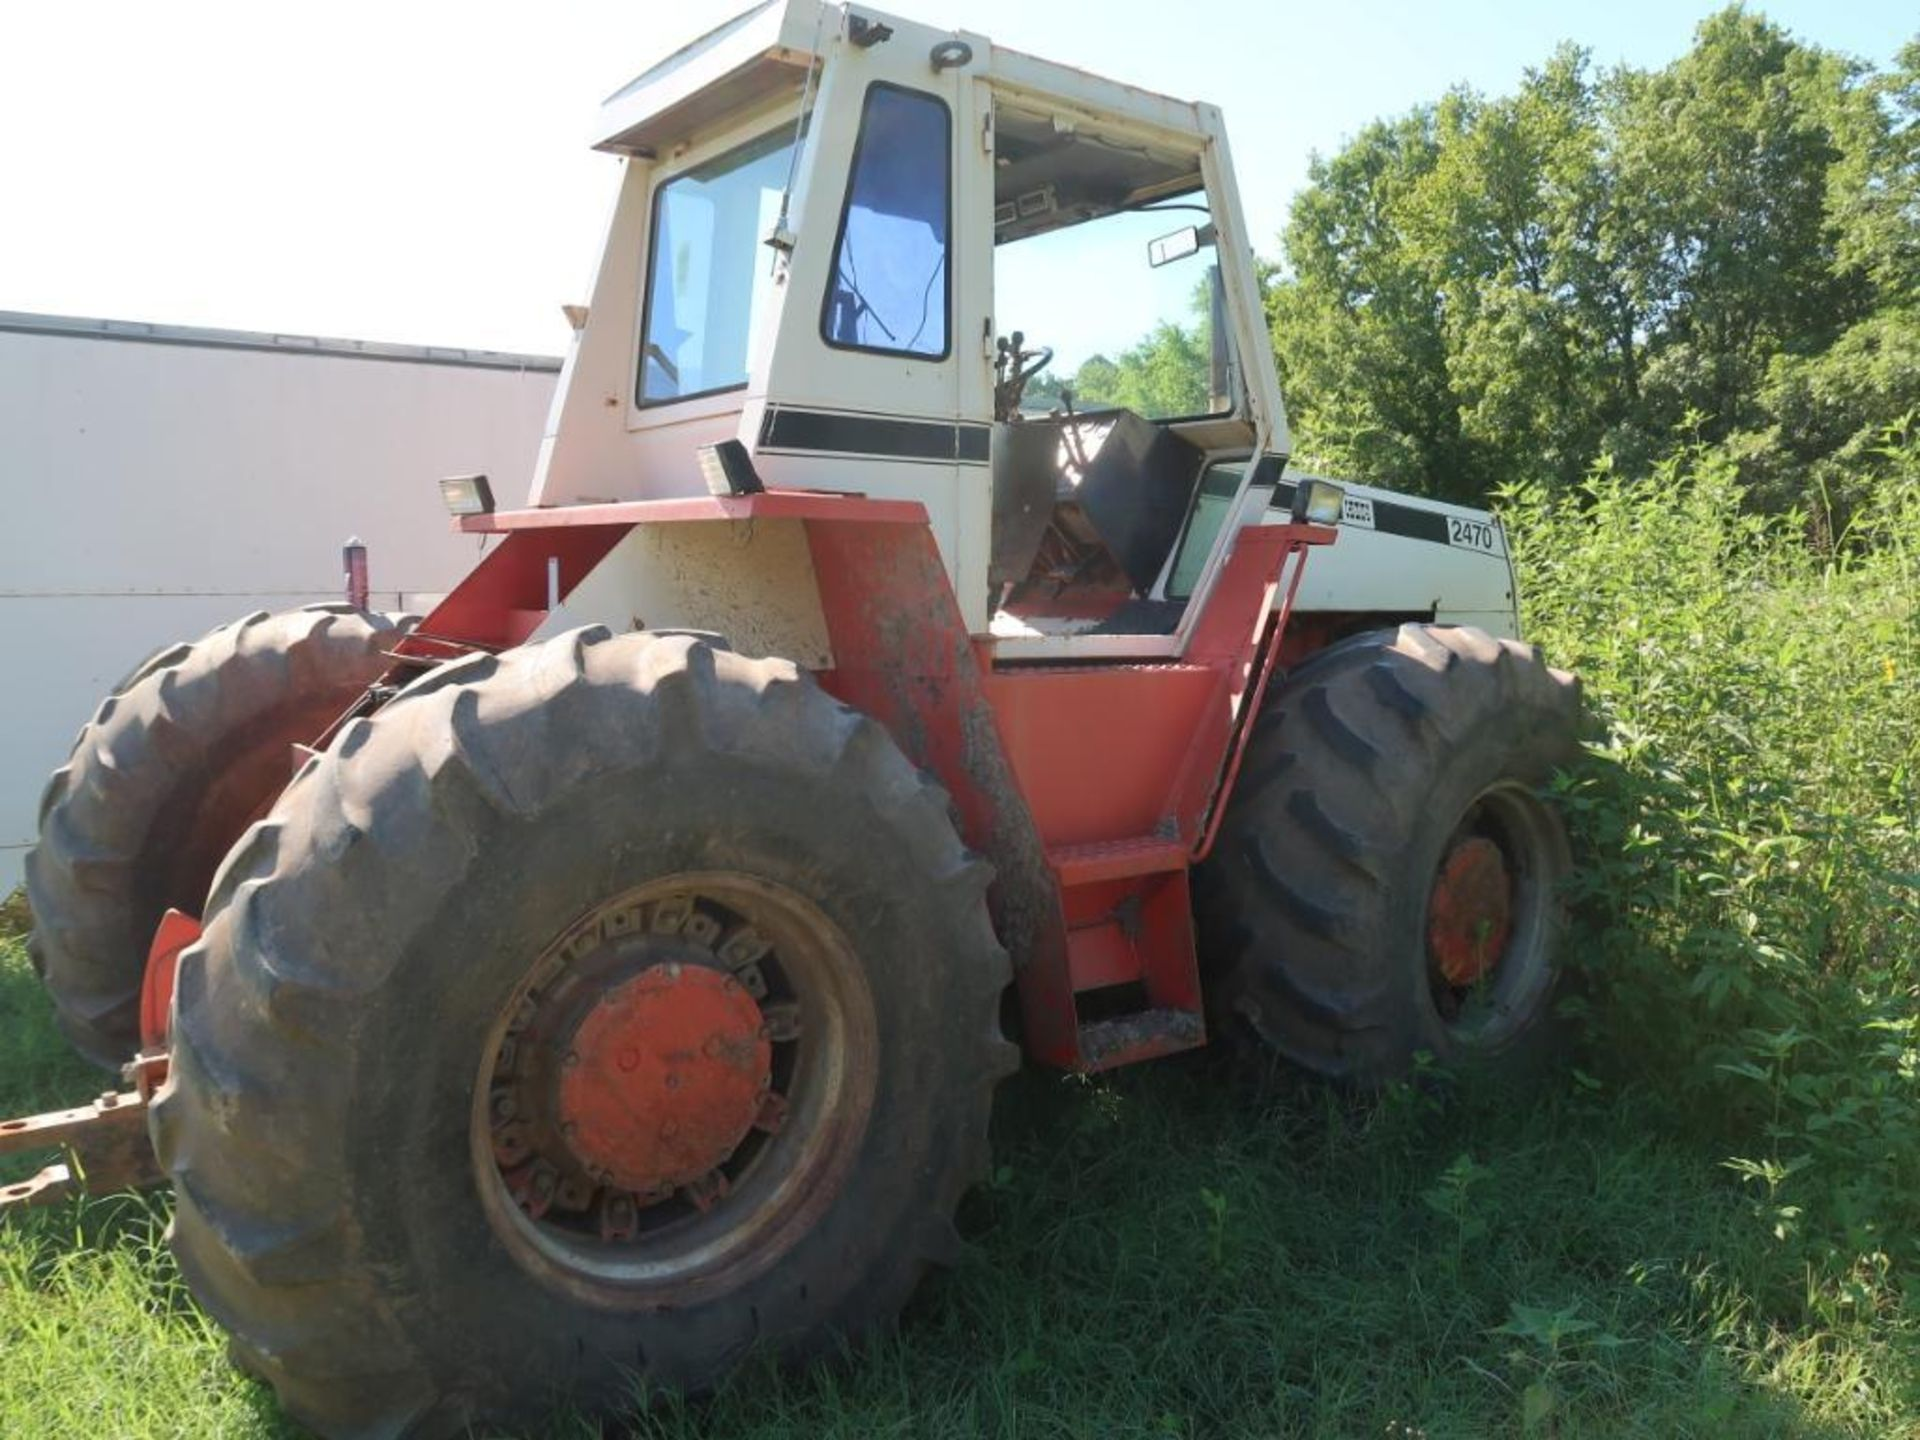 1974 Case Tractor Model 2470, S/N 8762465 (hole in block) (LOCATED IN ARDMORE, OK.)